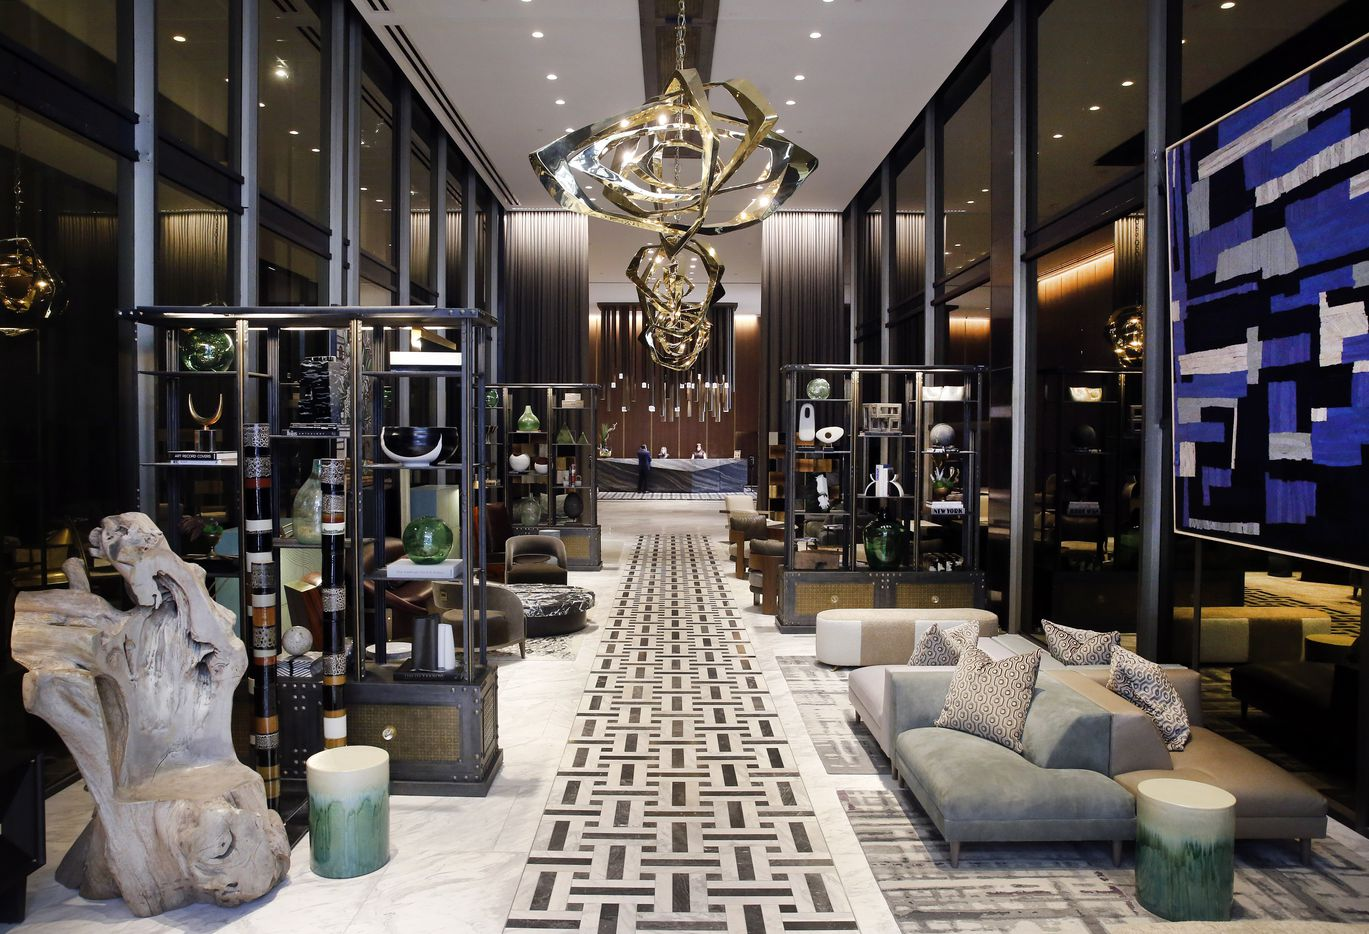 The lobby view looking into the 219-room Thompson Dallas luxury hotel.